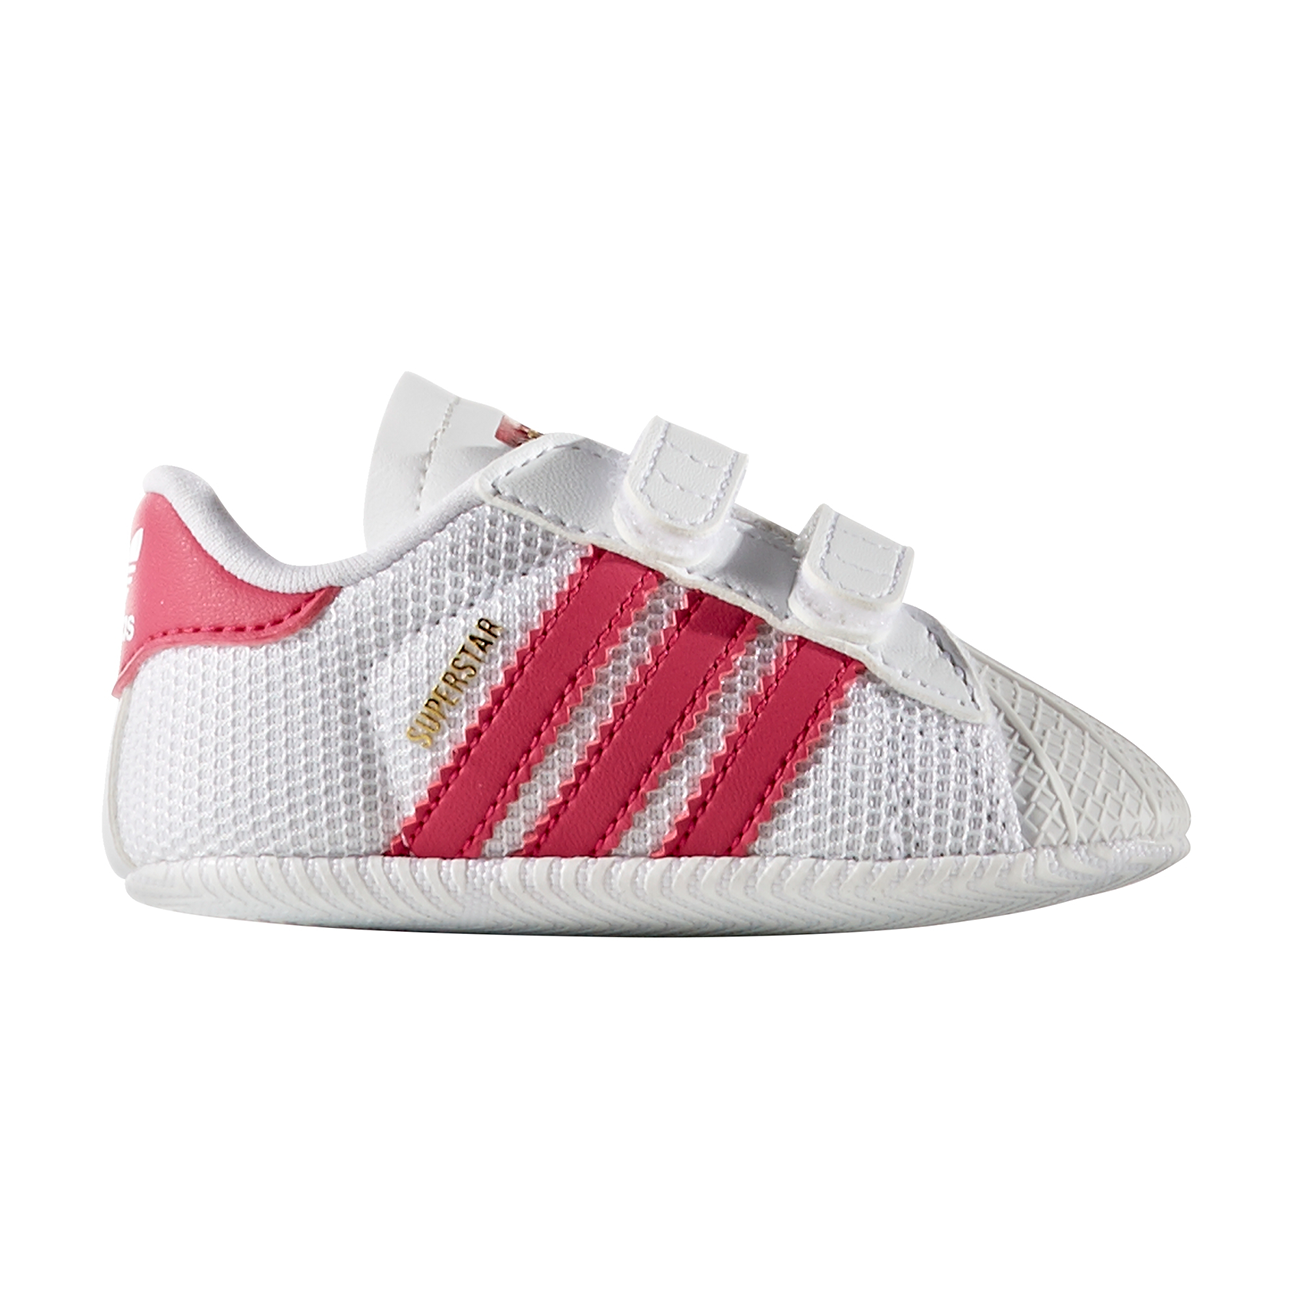 5293e410a8c adidas Superstar Sneakers White Pink S79917